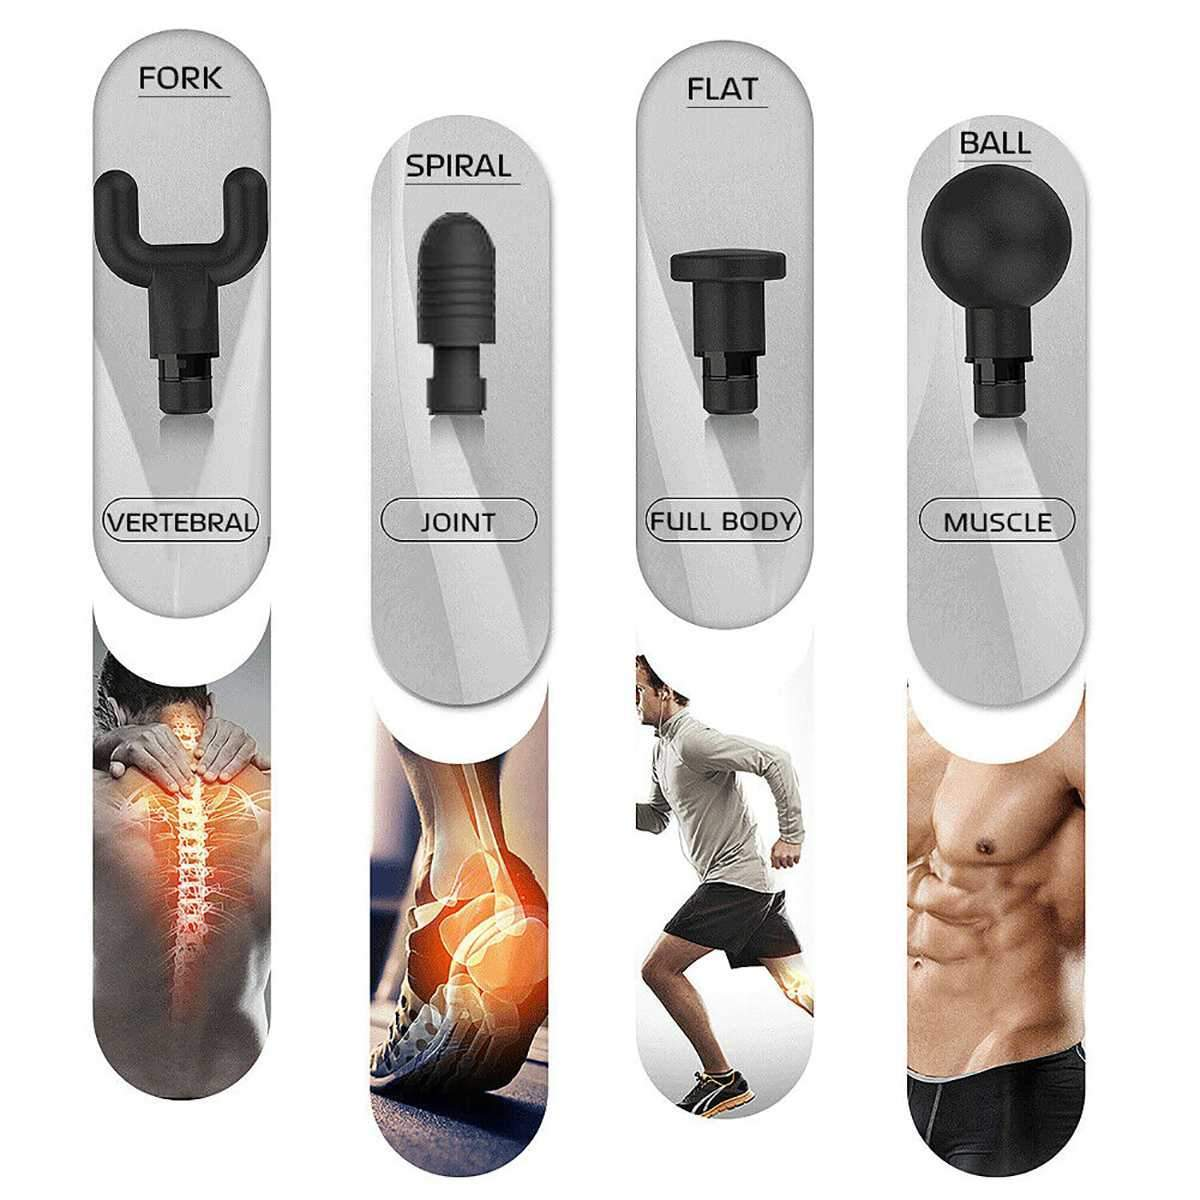 Electronic Fascia Guns—Your Professional Masseur